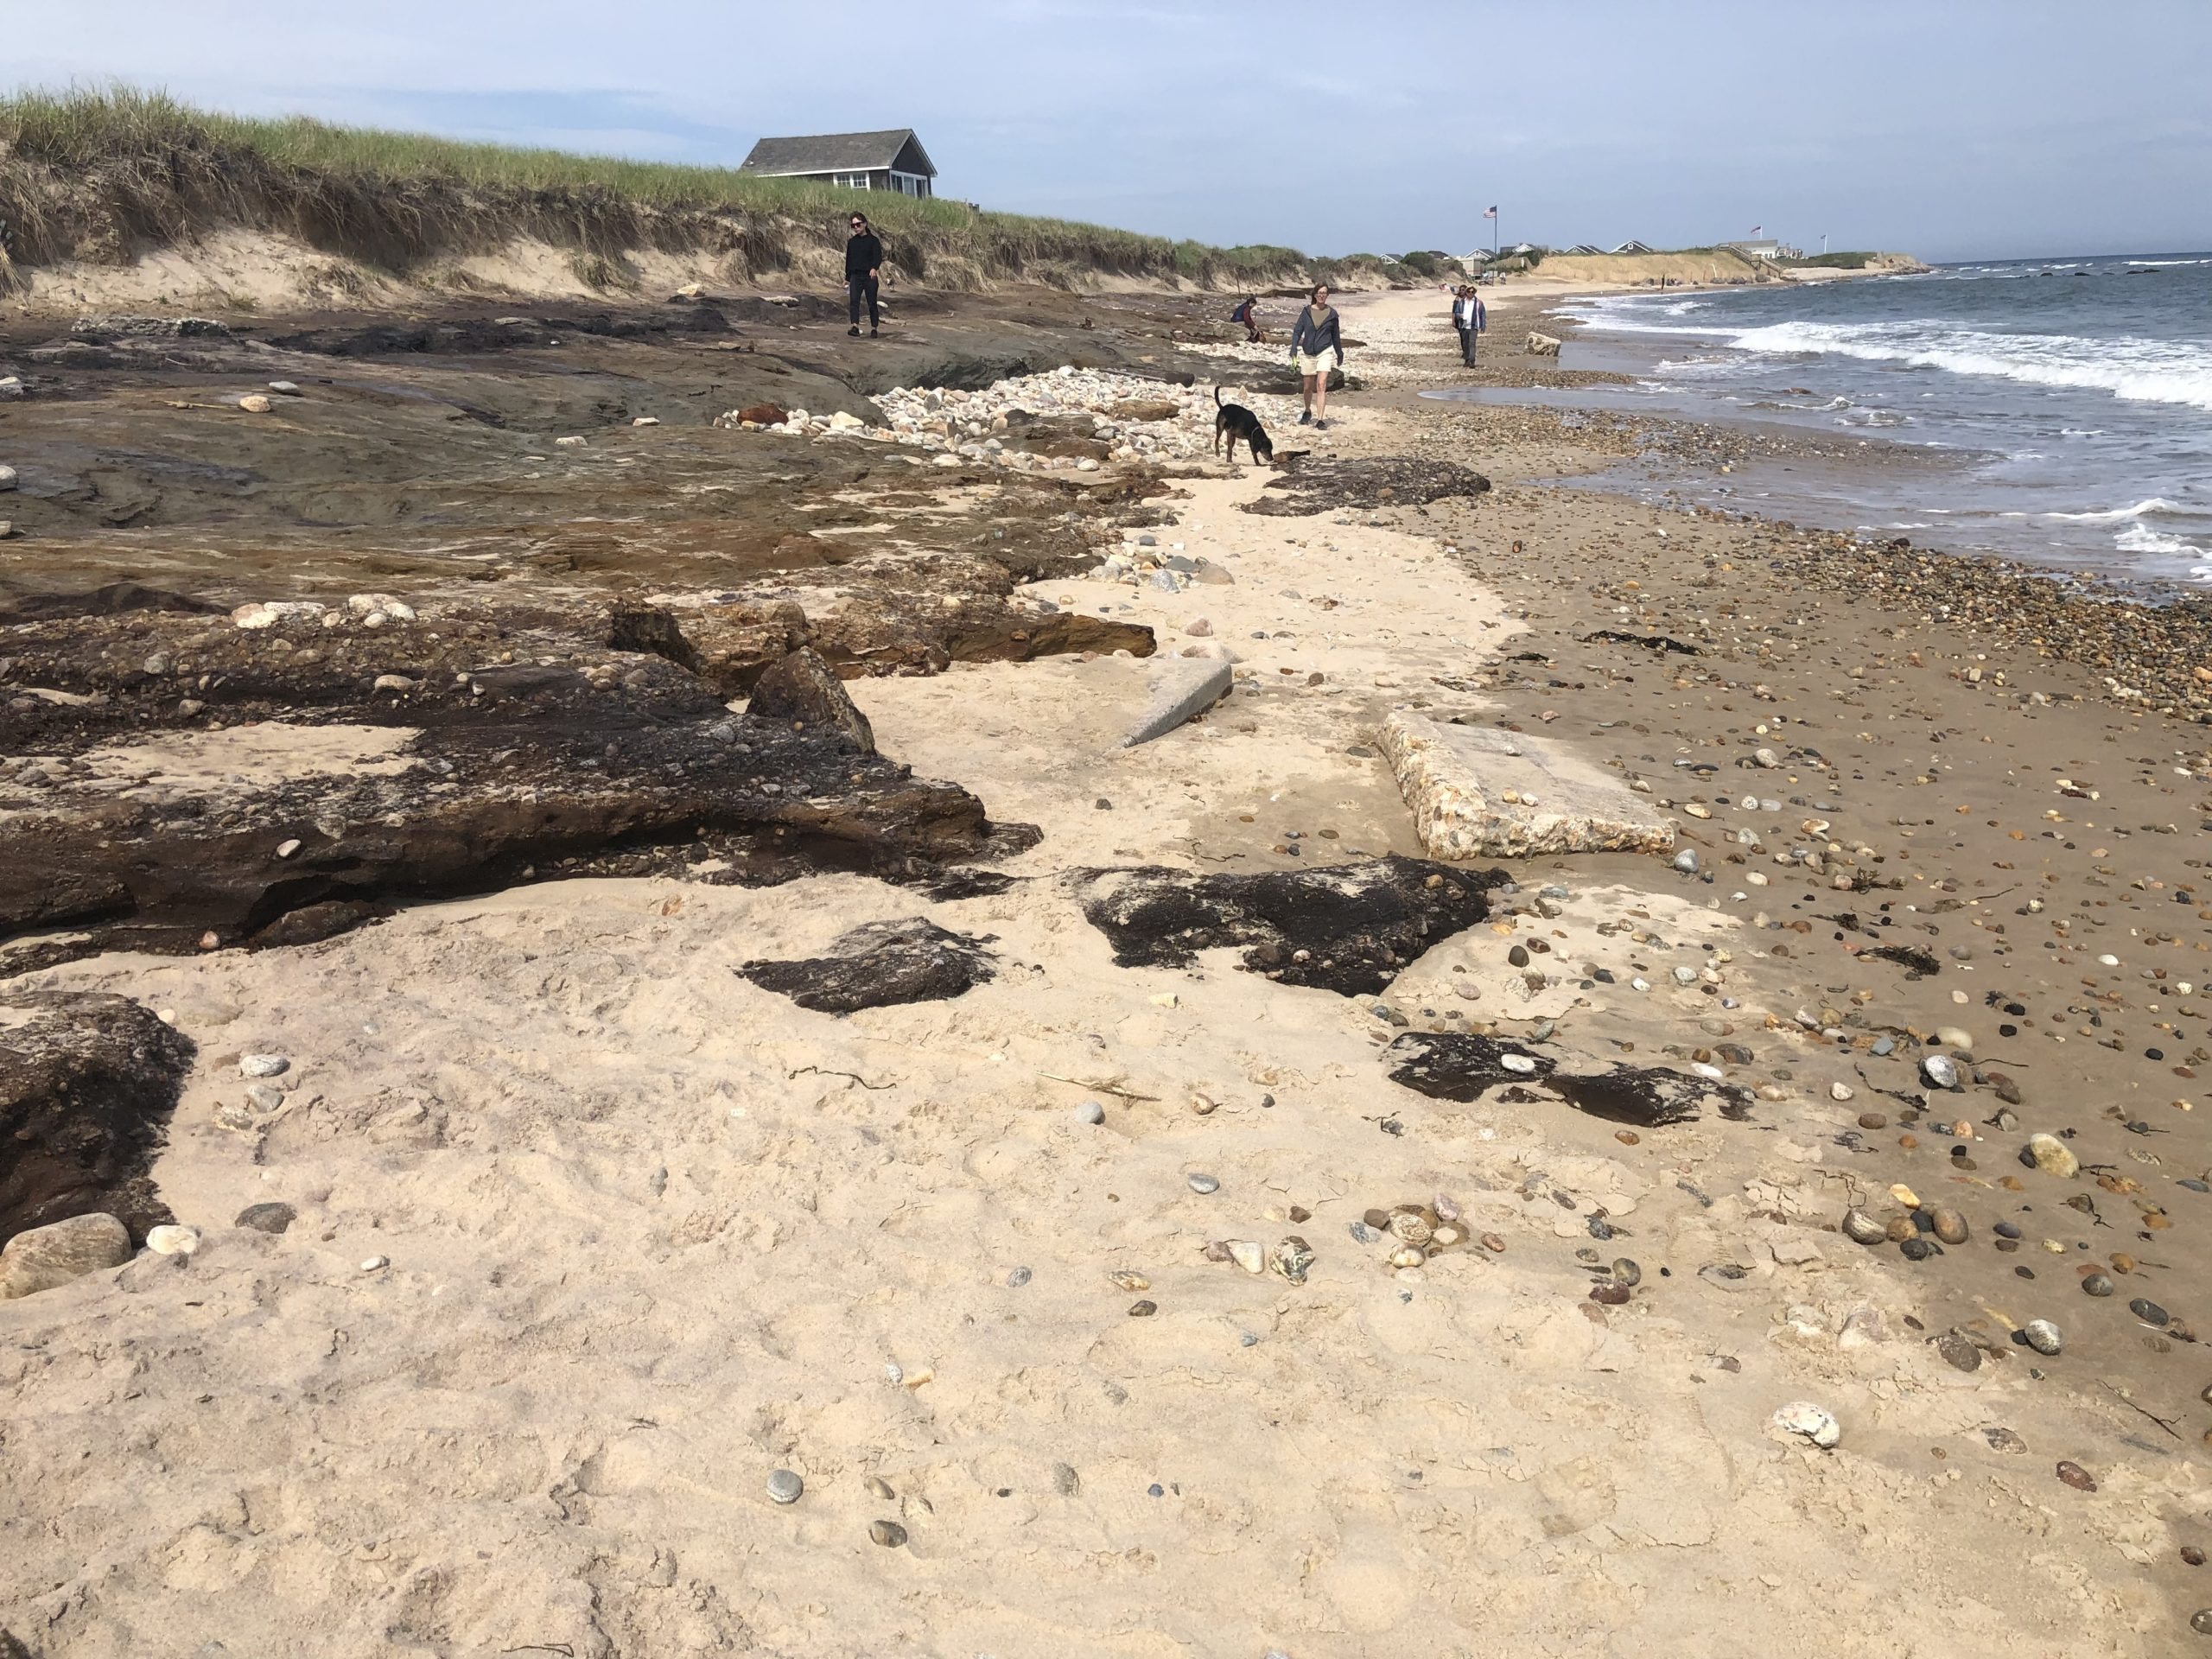 Ditch Plains beach in Montauk was scoured of nearly all of its sand by the Memorial Day weekend storm, leaving town officials to consider trucking in tons of sand to try and restore at least some of the bathing beach before the height of the summer season.